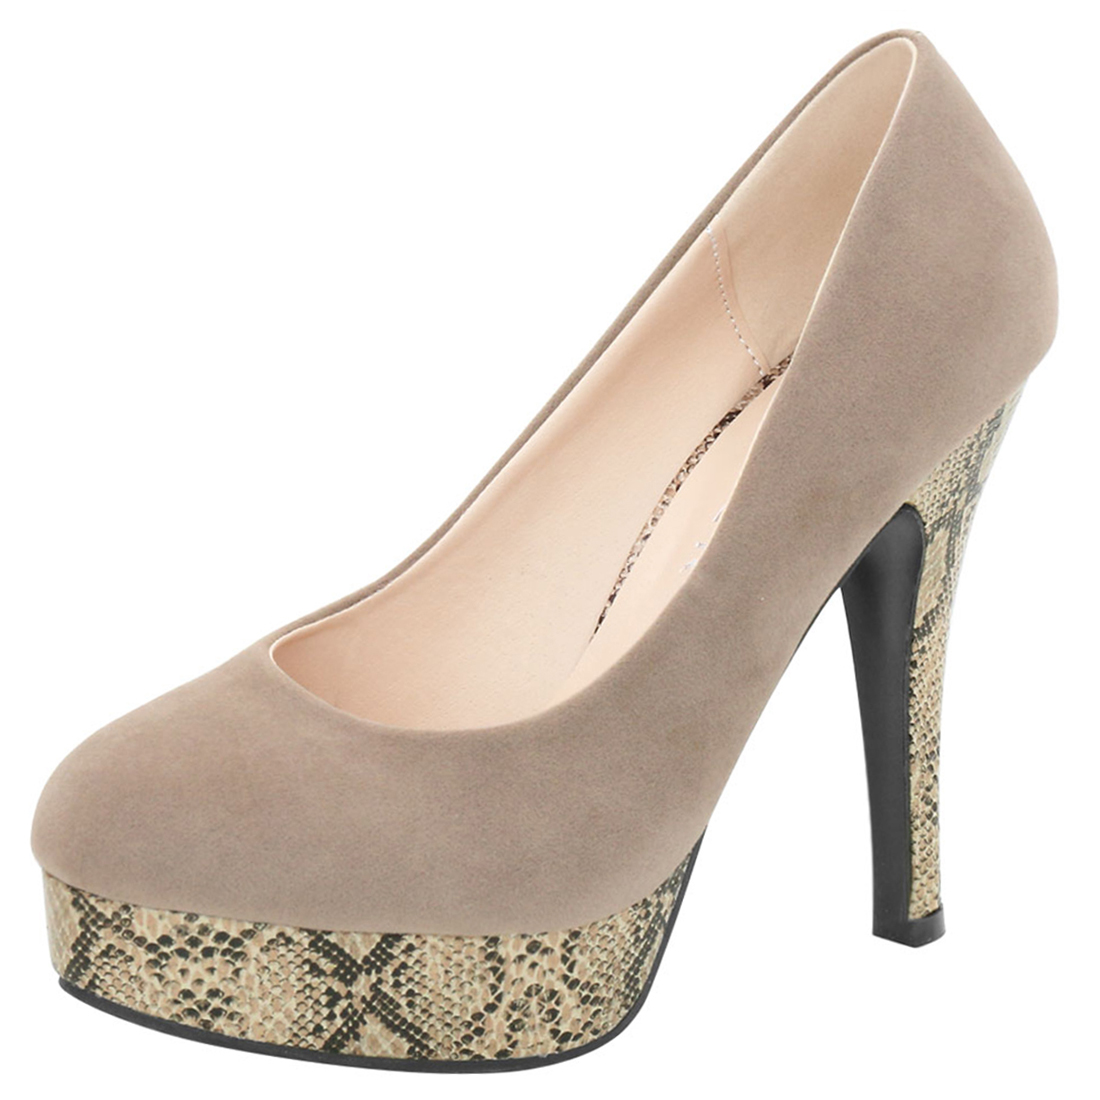 Woman Rounded Toe Snake Effect Stiletto Platform Pumps Taupe US 7.5